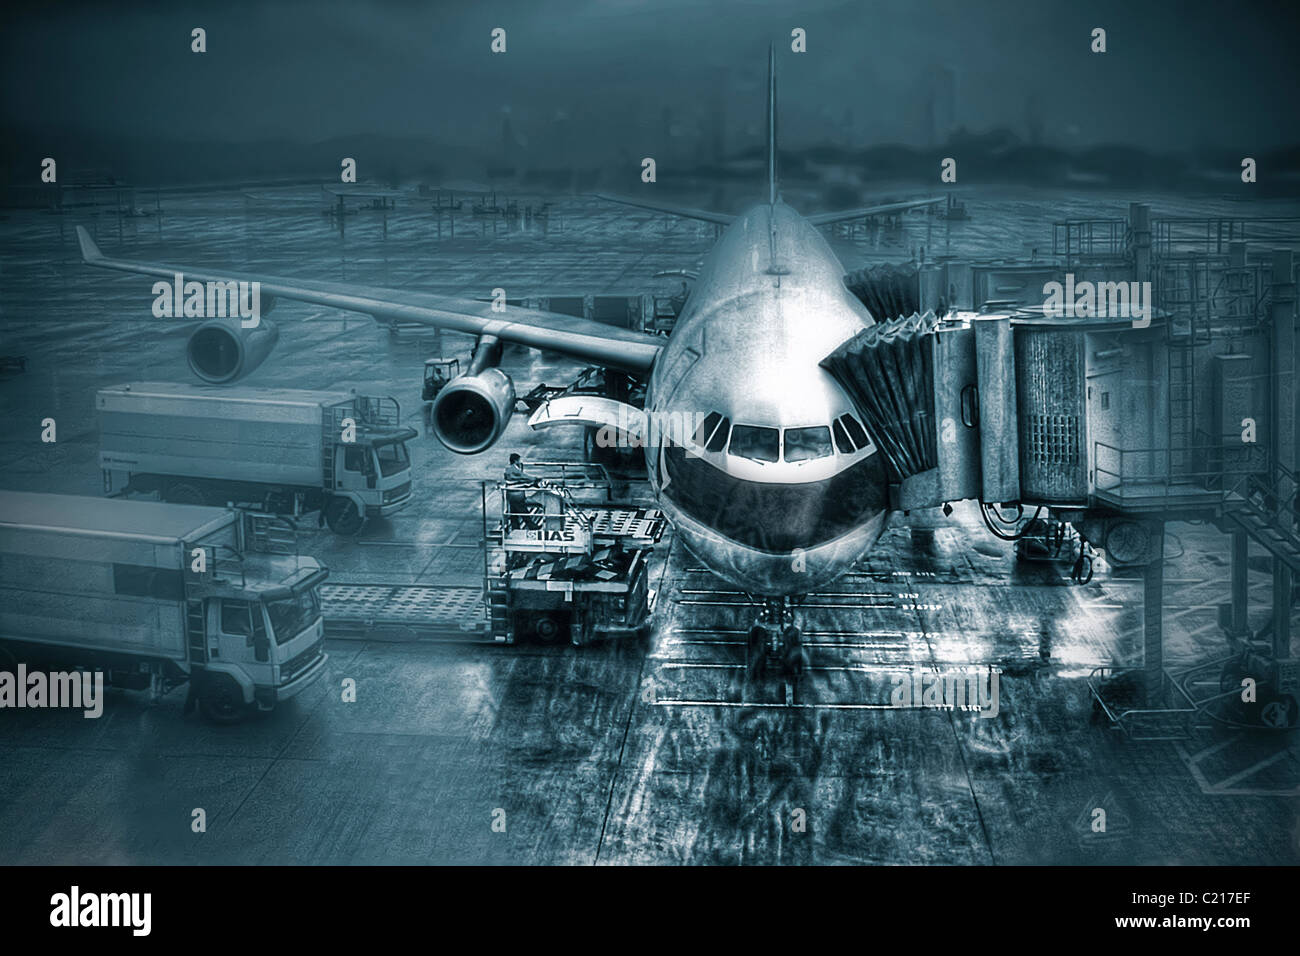 Boeing 757 commercial airliner at boarding gate at Hong Kong International Airport - Stock Image